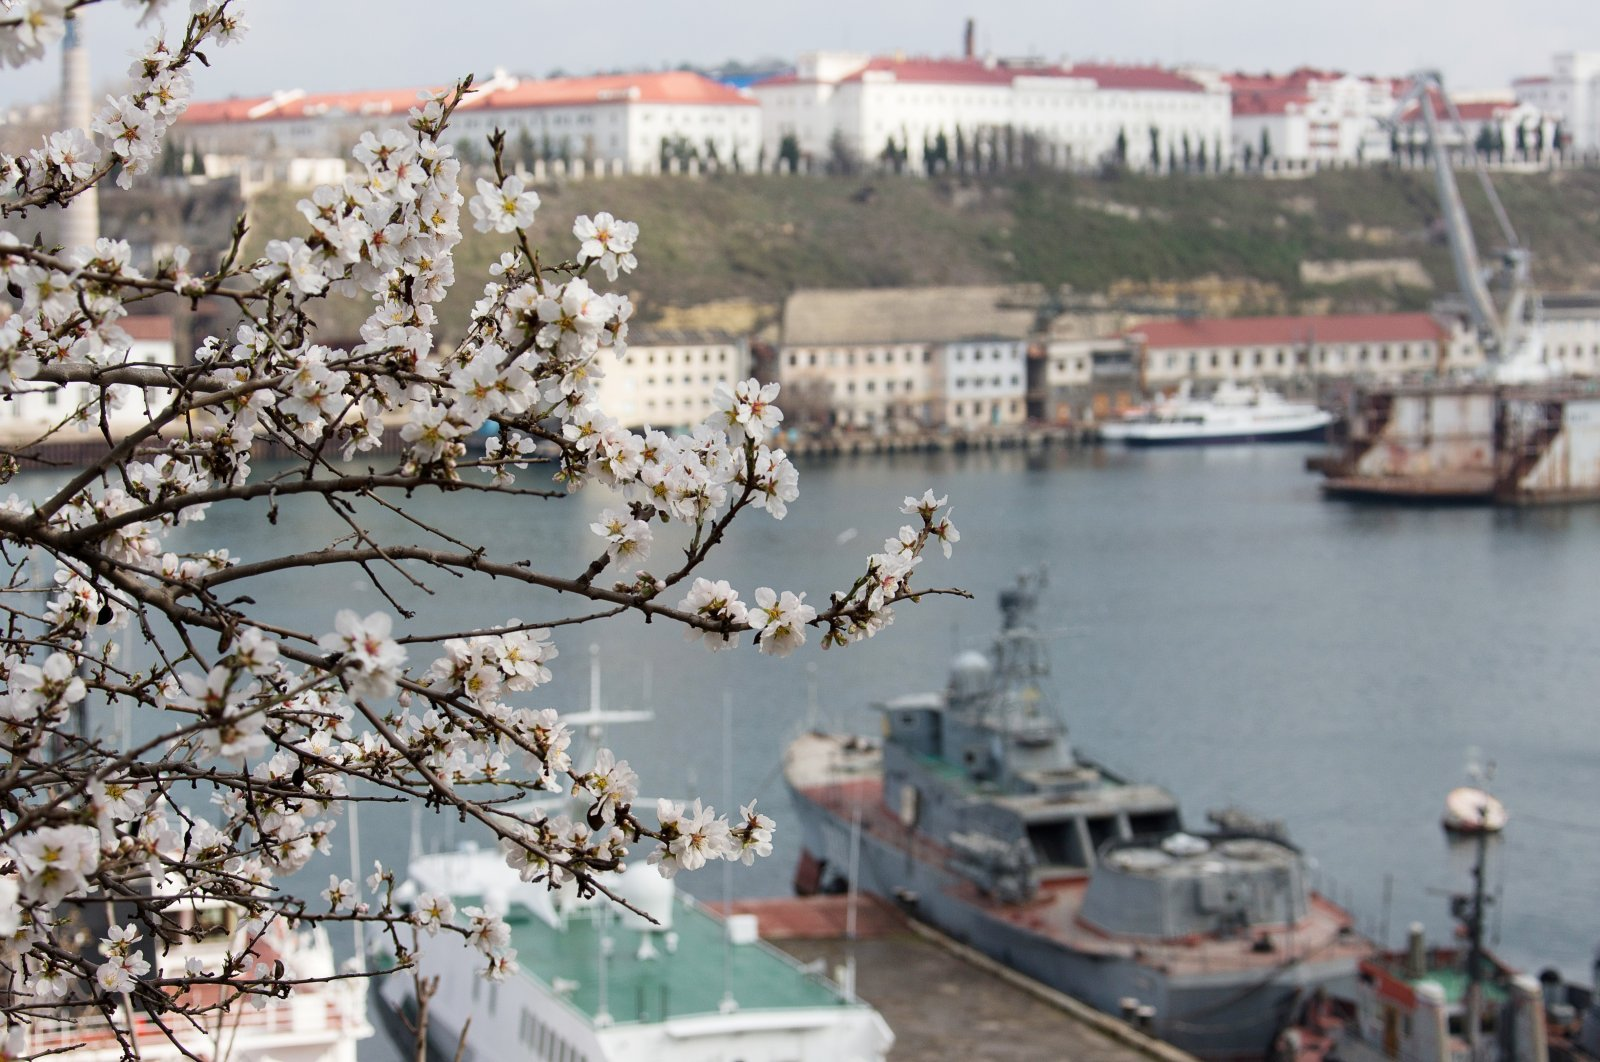 An almond tree in blossom against the background of Sevastopol's Yuzhnaya Bay, Crimea, March 11, 2020. (Photo by Getty Images)